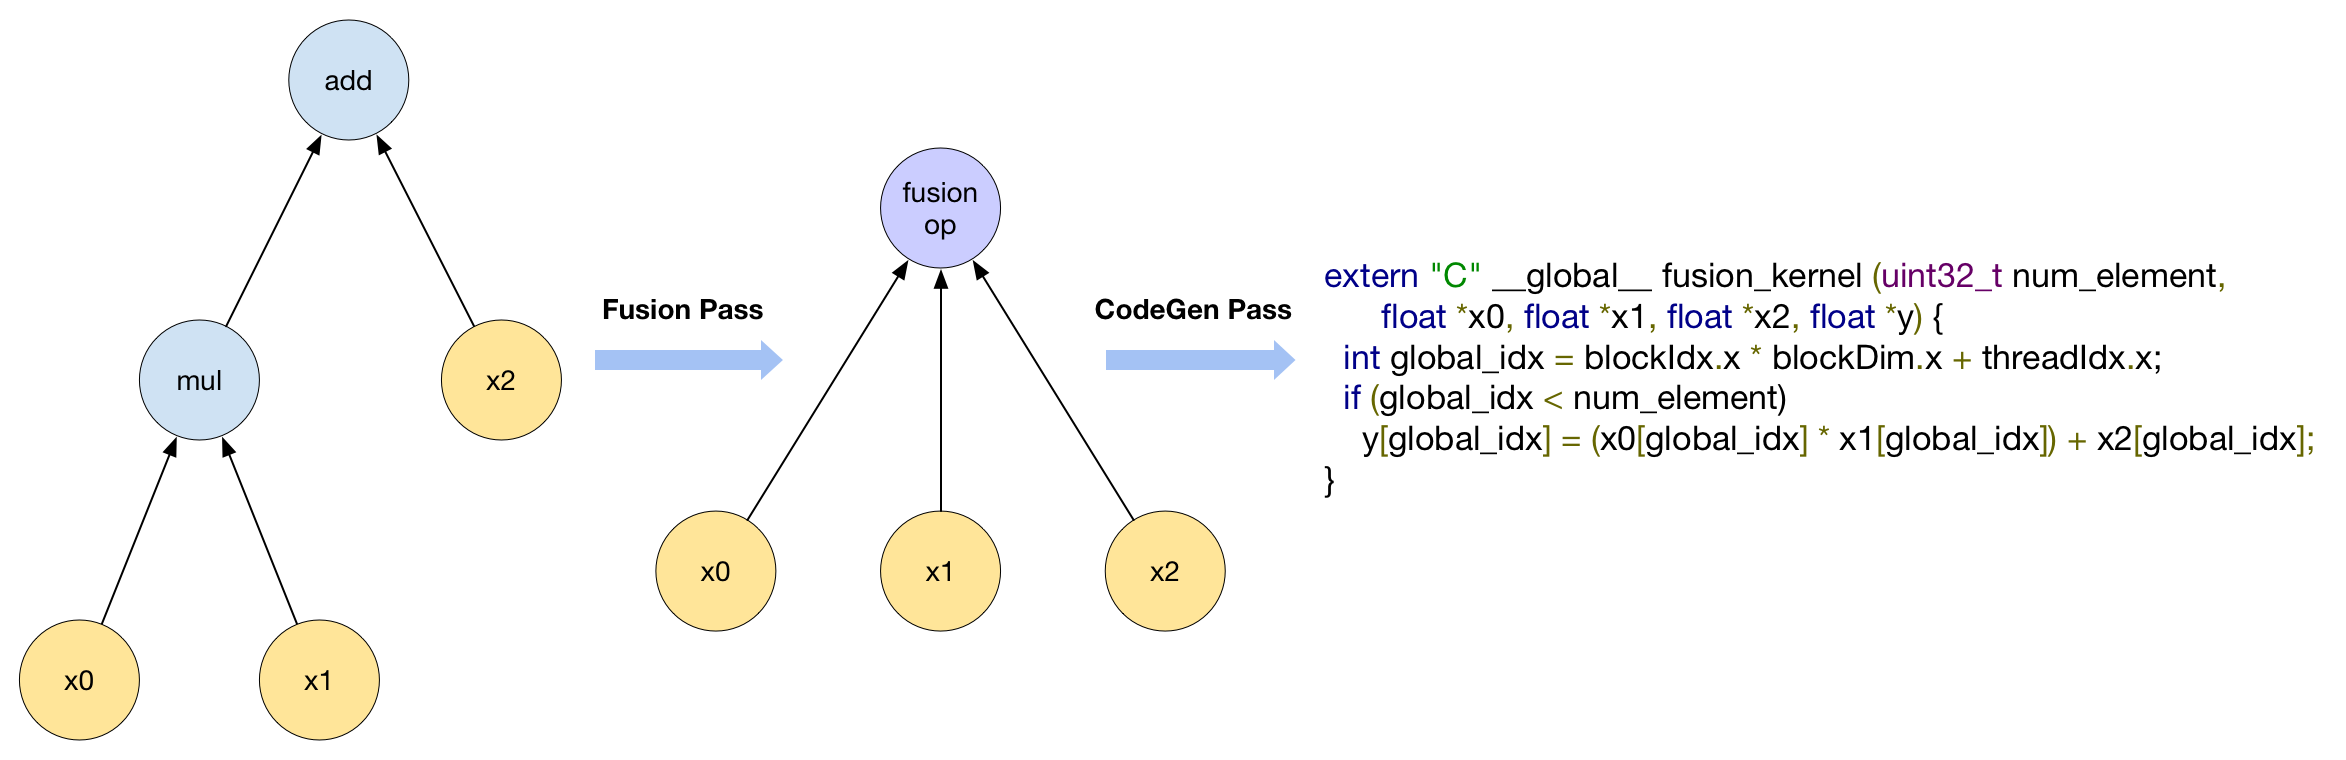 Figure1 Compute With Fusion